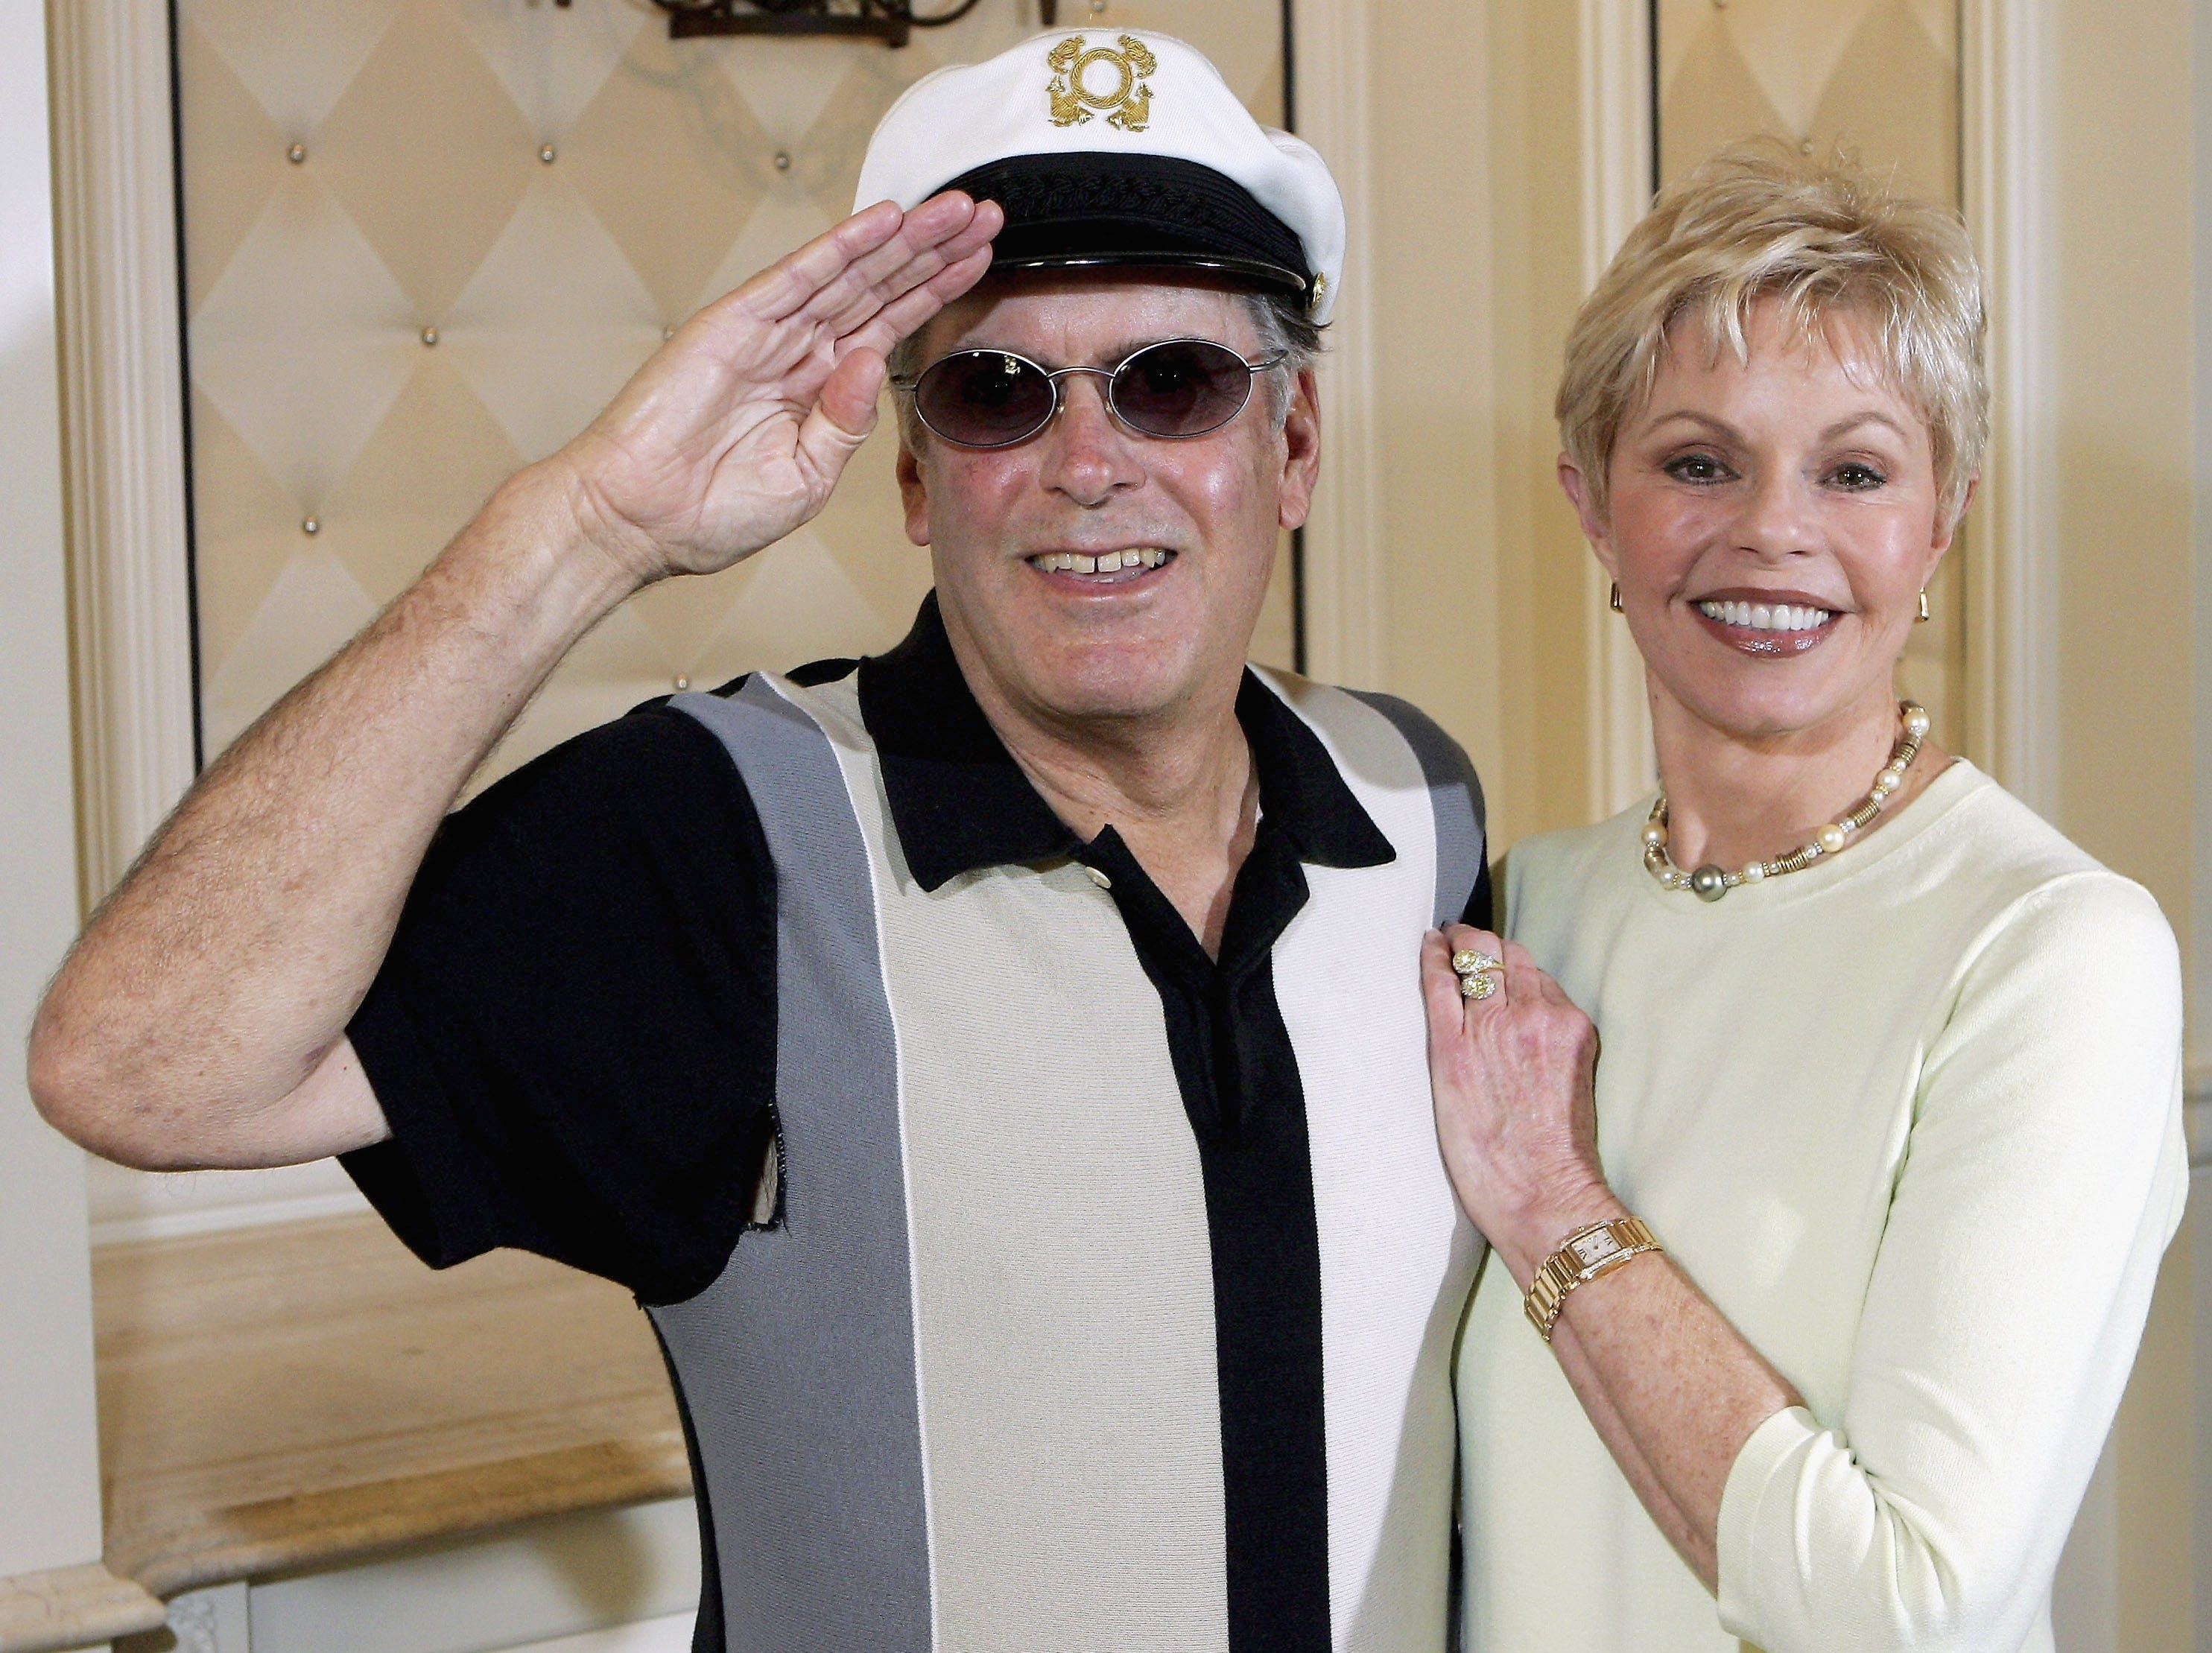 "LAS VEGAS - JULY 27:  ""Captain"" Daryl Dragon and his wife Toni Tennille of the music duo The Captain and Tennille, pose at the Video Software Dealers Association's annual home video convention at the Bellagio July 27, 2005 in Las Vegas, Nevada. They are promoting a Christmas album entitled ""Saving Up Christmas"" and a DVD box set that will each be released October 11, 2005.  (Photo by Ethan Miller/Getty Images) [Via MerlinFTP Drop]"